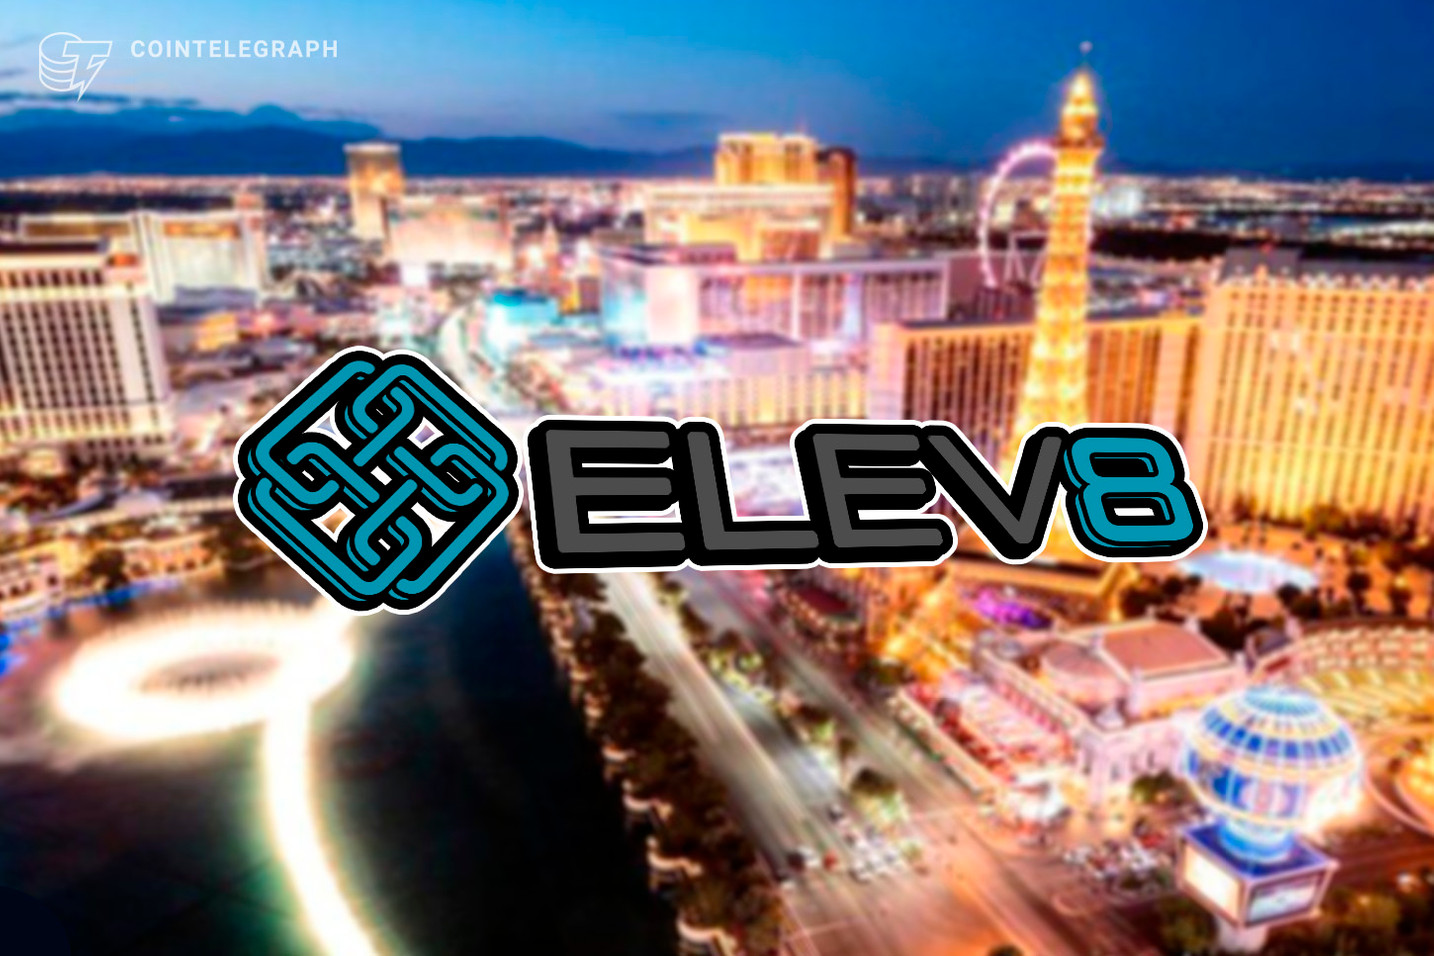 ELEV8 Announces First Speaker Lineup & Preliminary Agenda Featuring IBM